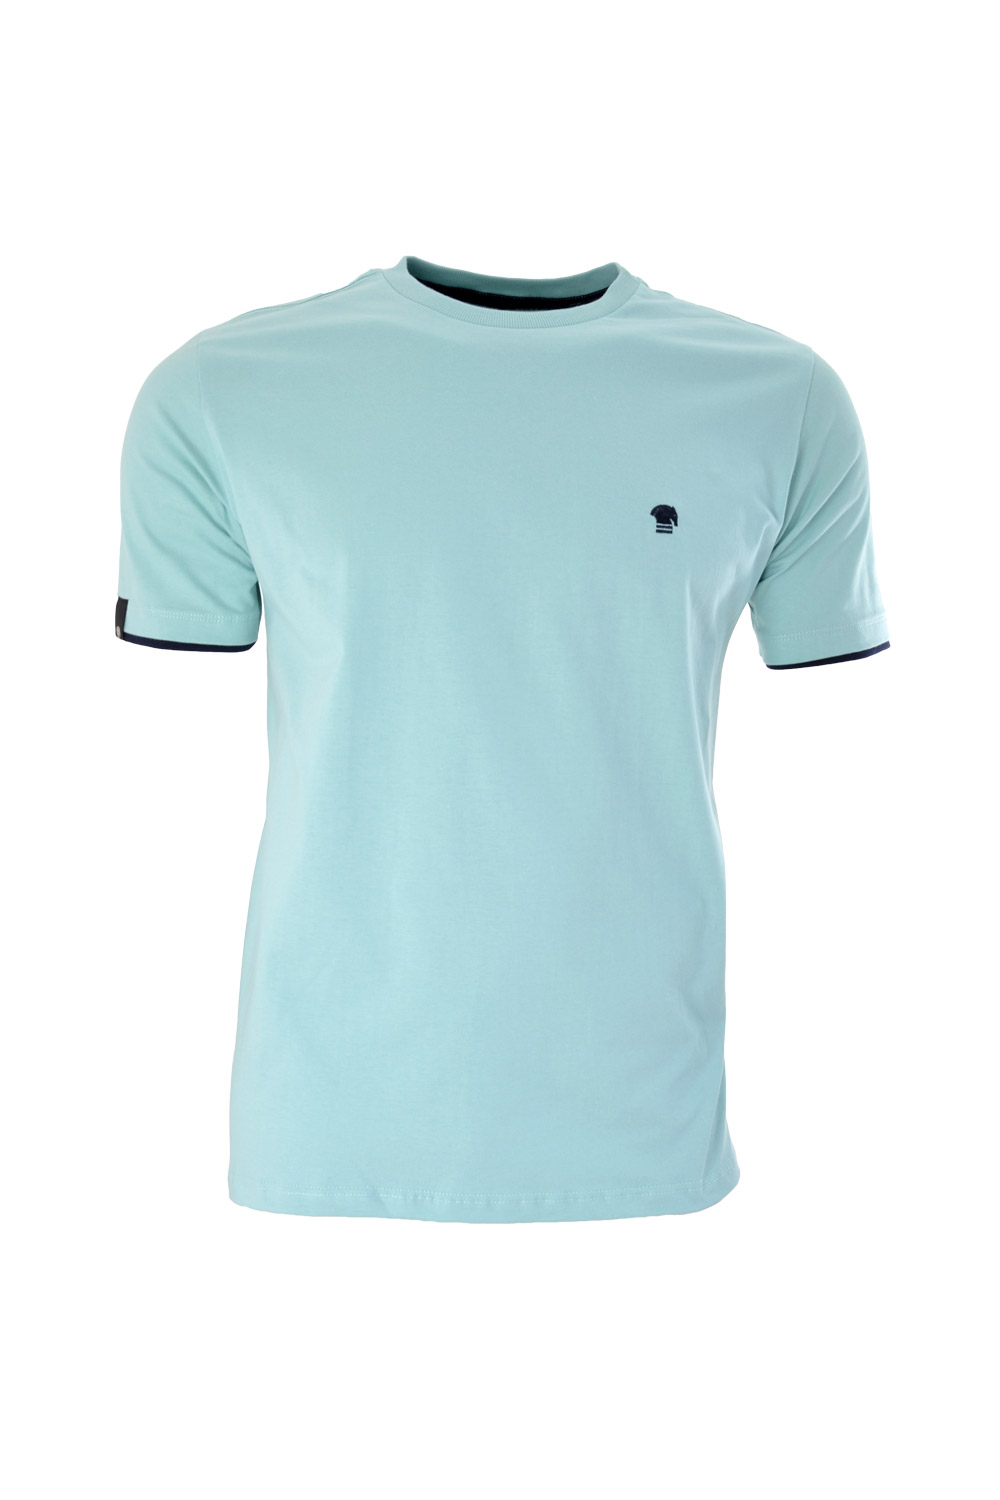 CAMISETA MC BLUES SUPER SLIM ALGODAO GOLA C LISO VERDE AGUA